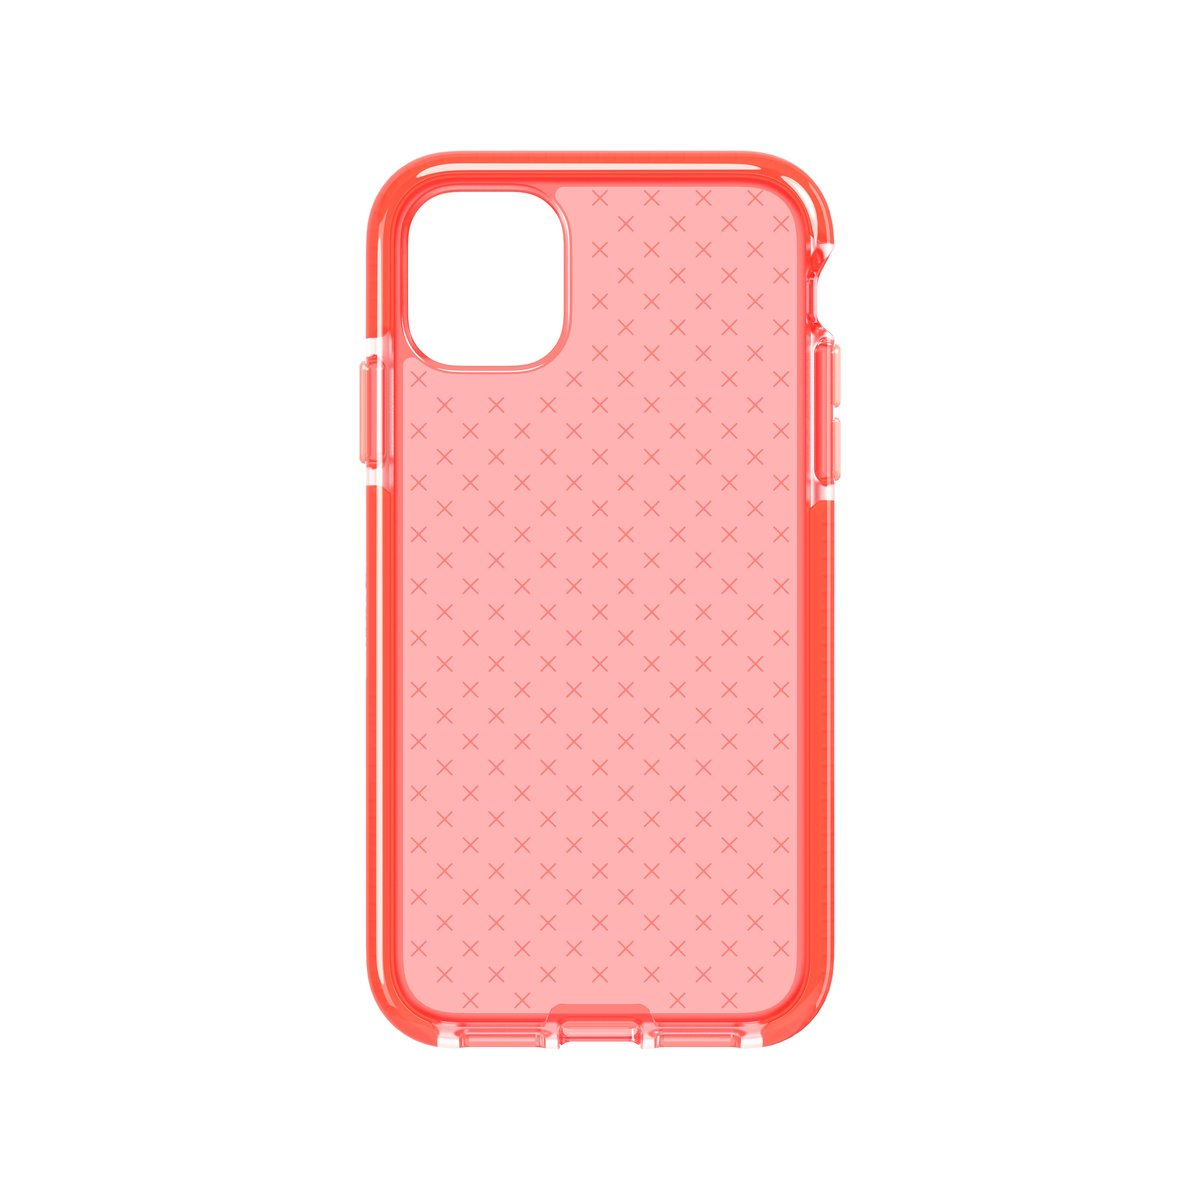 Evo Check for iPhone 11 - Coral